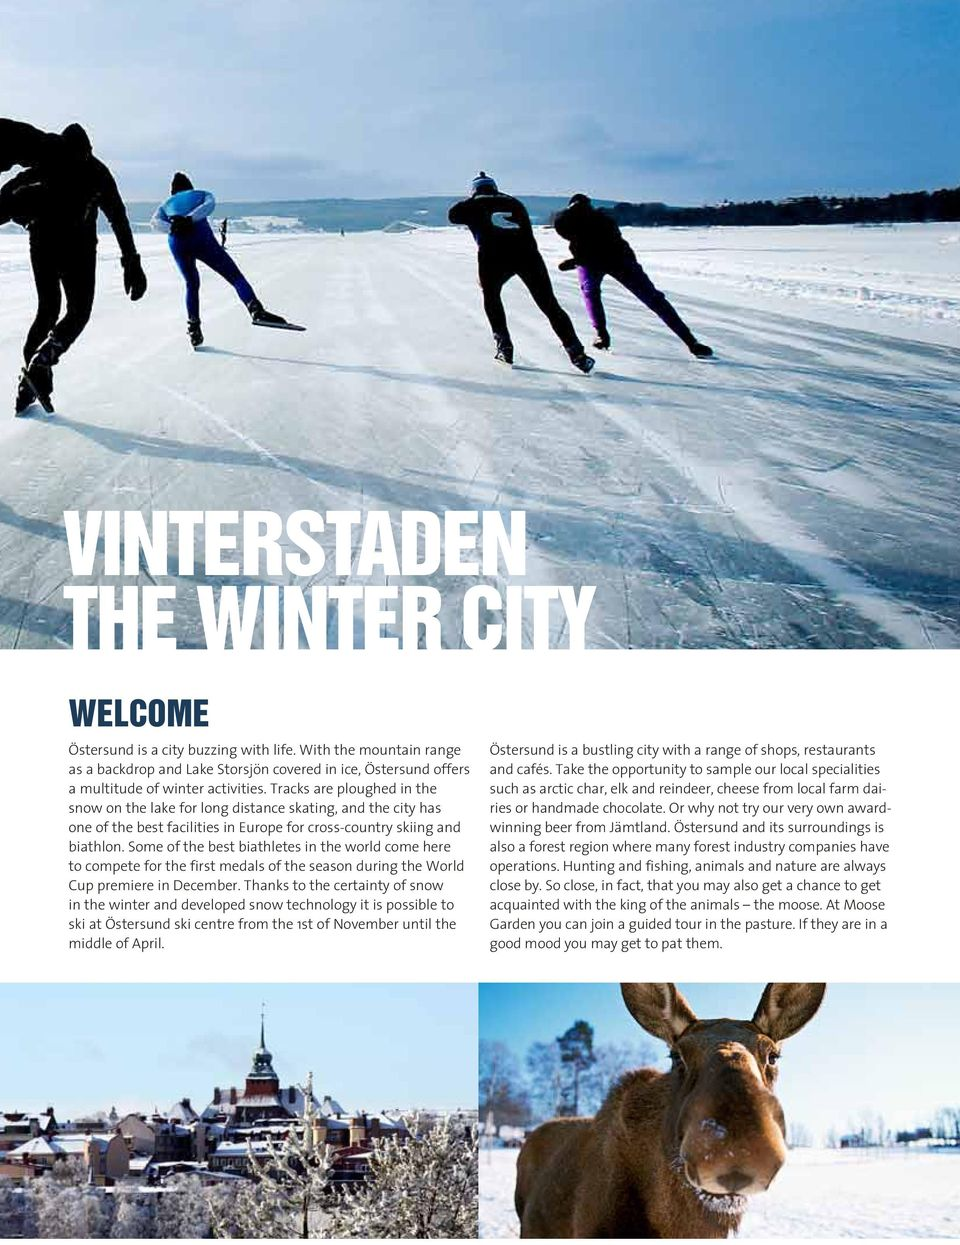 Some of the best biathletes in the world come here to compete for the first medals of the season during the World Cup premiere in December.